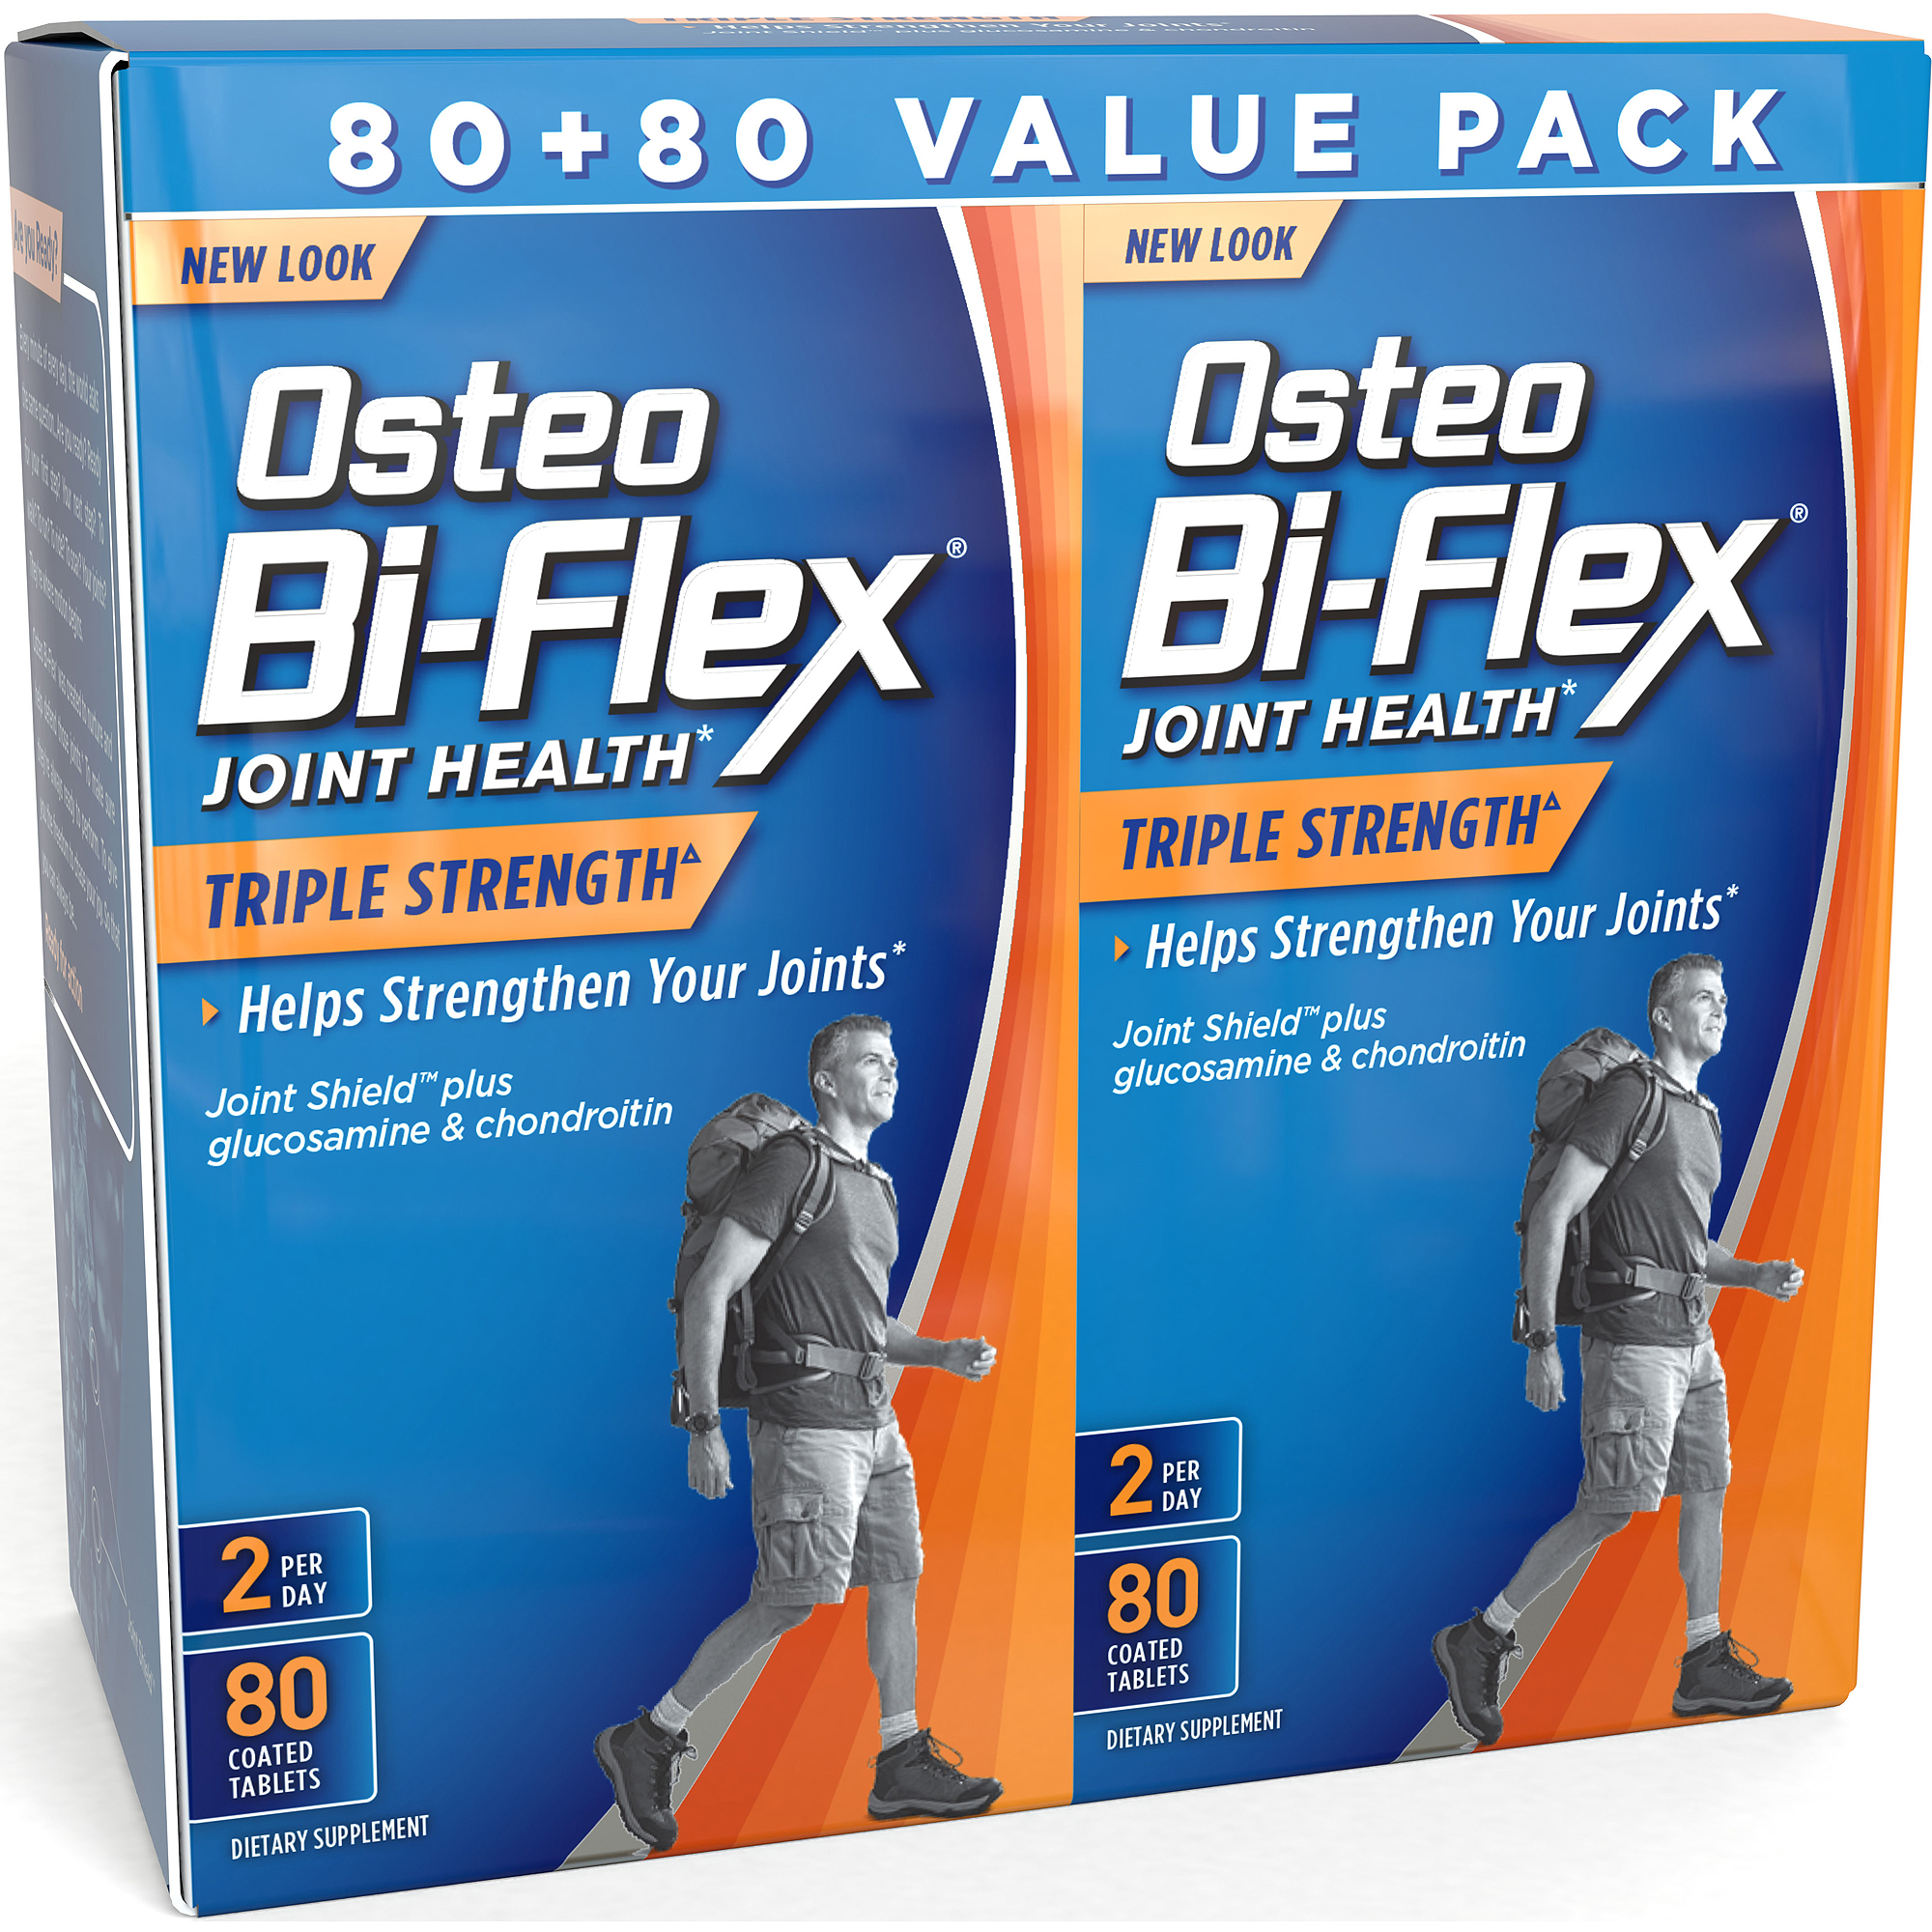 Osteo Bi-Flex Glucosamine Chondroitin MSM With 5-Loxin Advanced Supplement Tablets, 80 Count, 2 pack